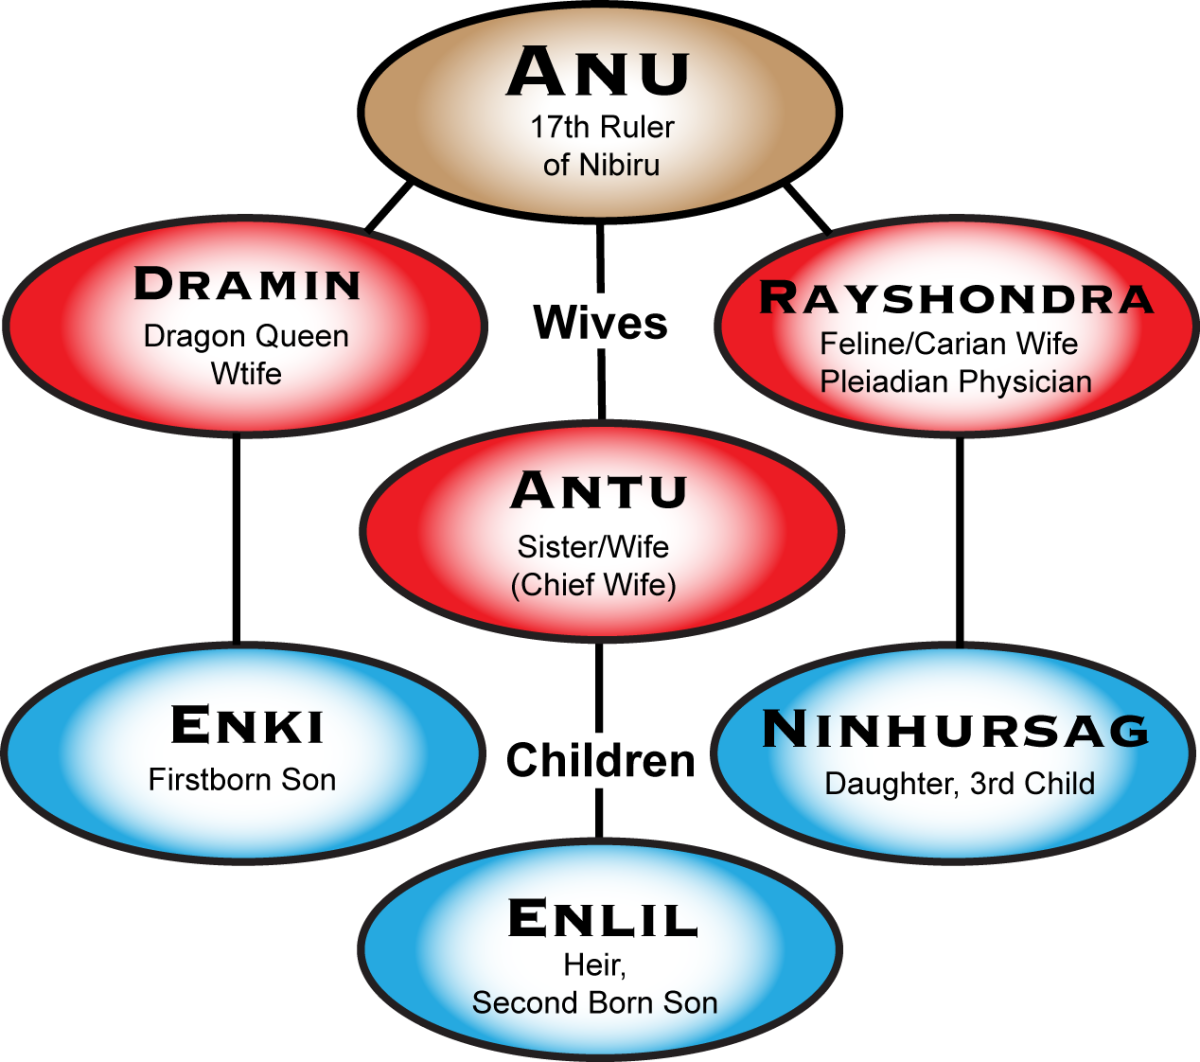 The Royal Family line of Anunnaki during their occupation of Earth and right to succession lead to many wars, that were fought mostly by humans, for their gods.